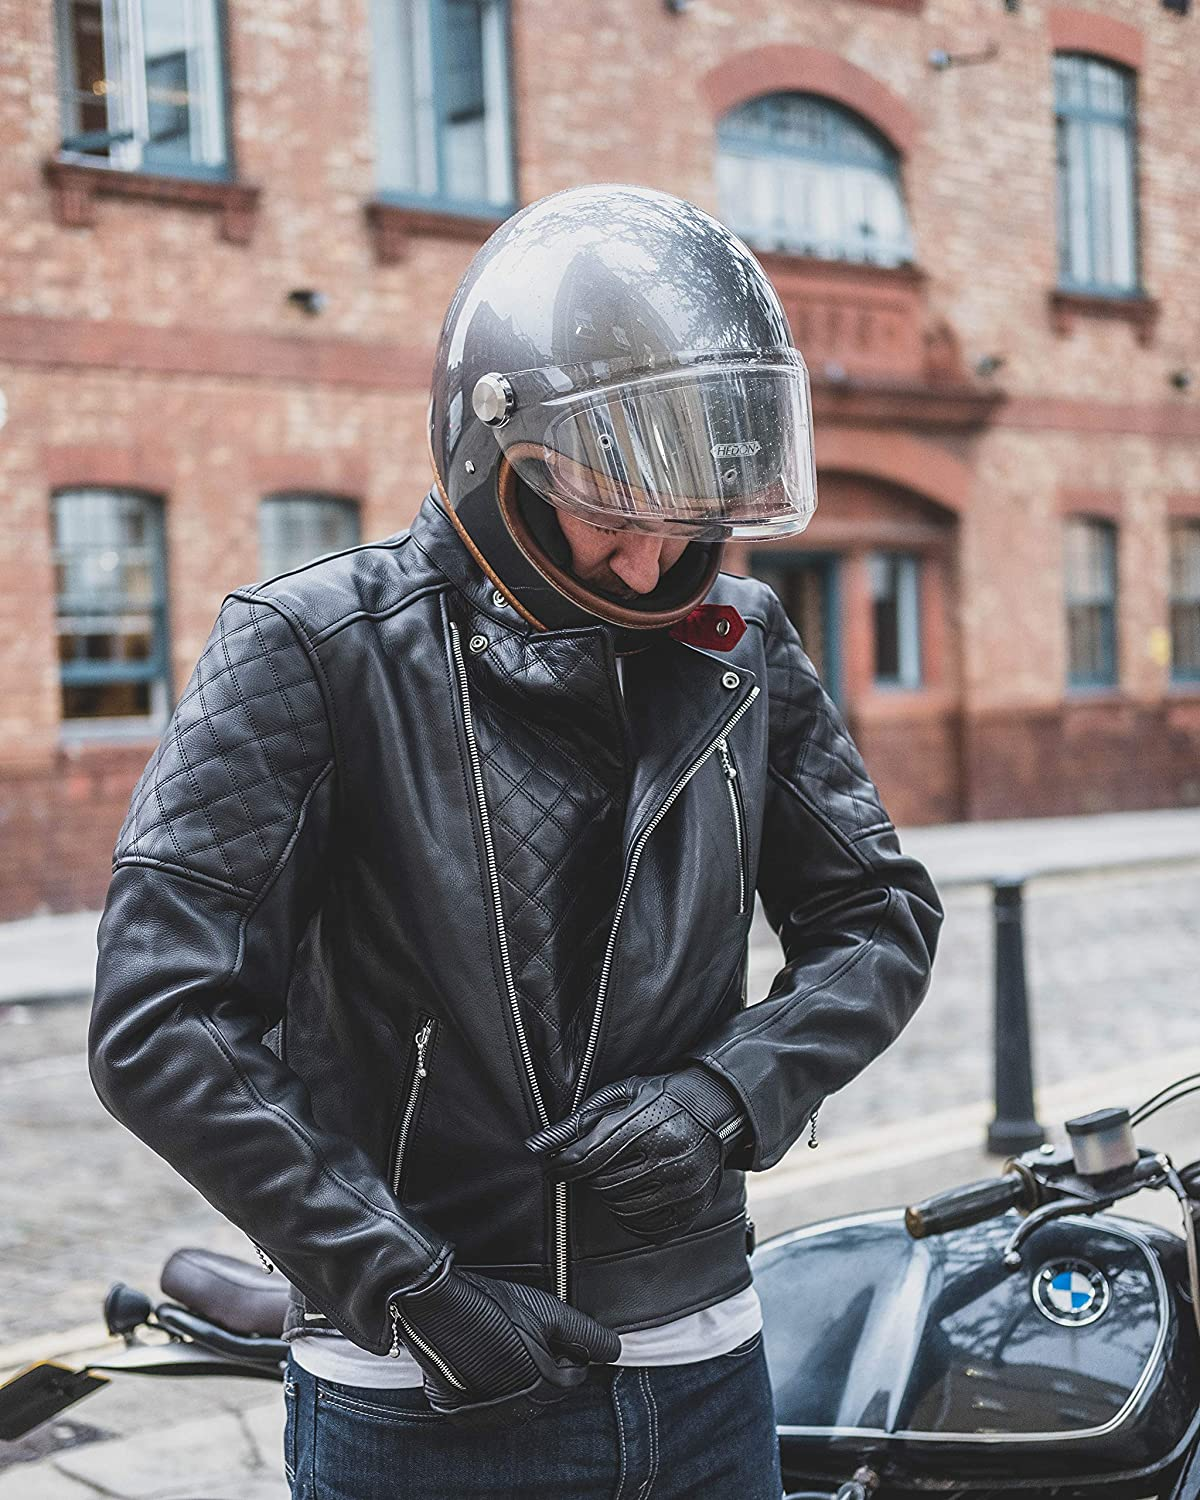 Rider wearing Goldtop Black Leather Jacket with Hedon Helmet